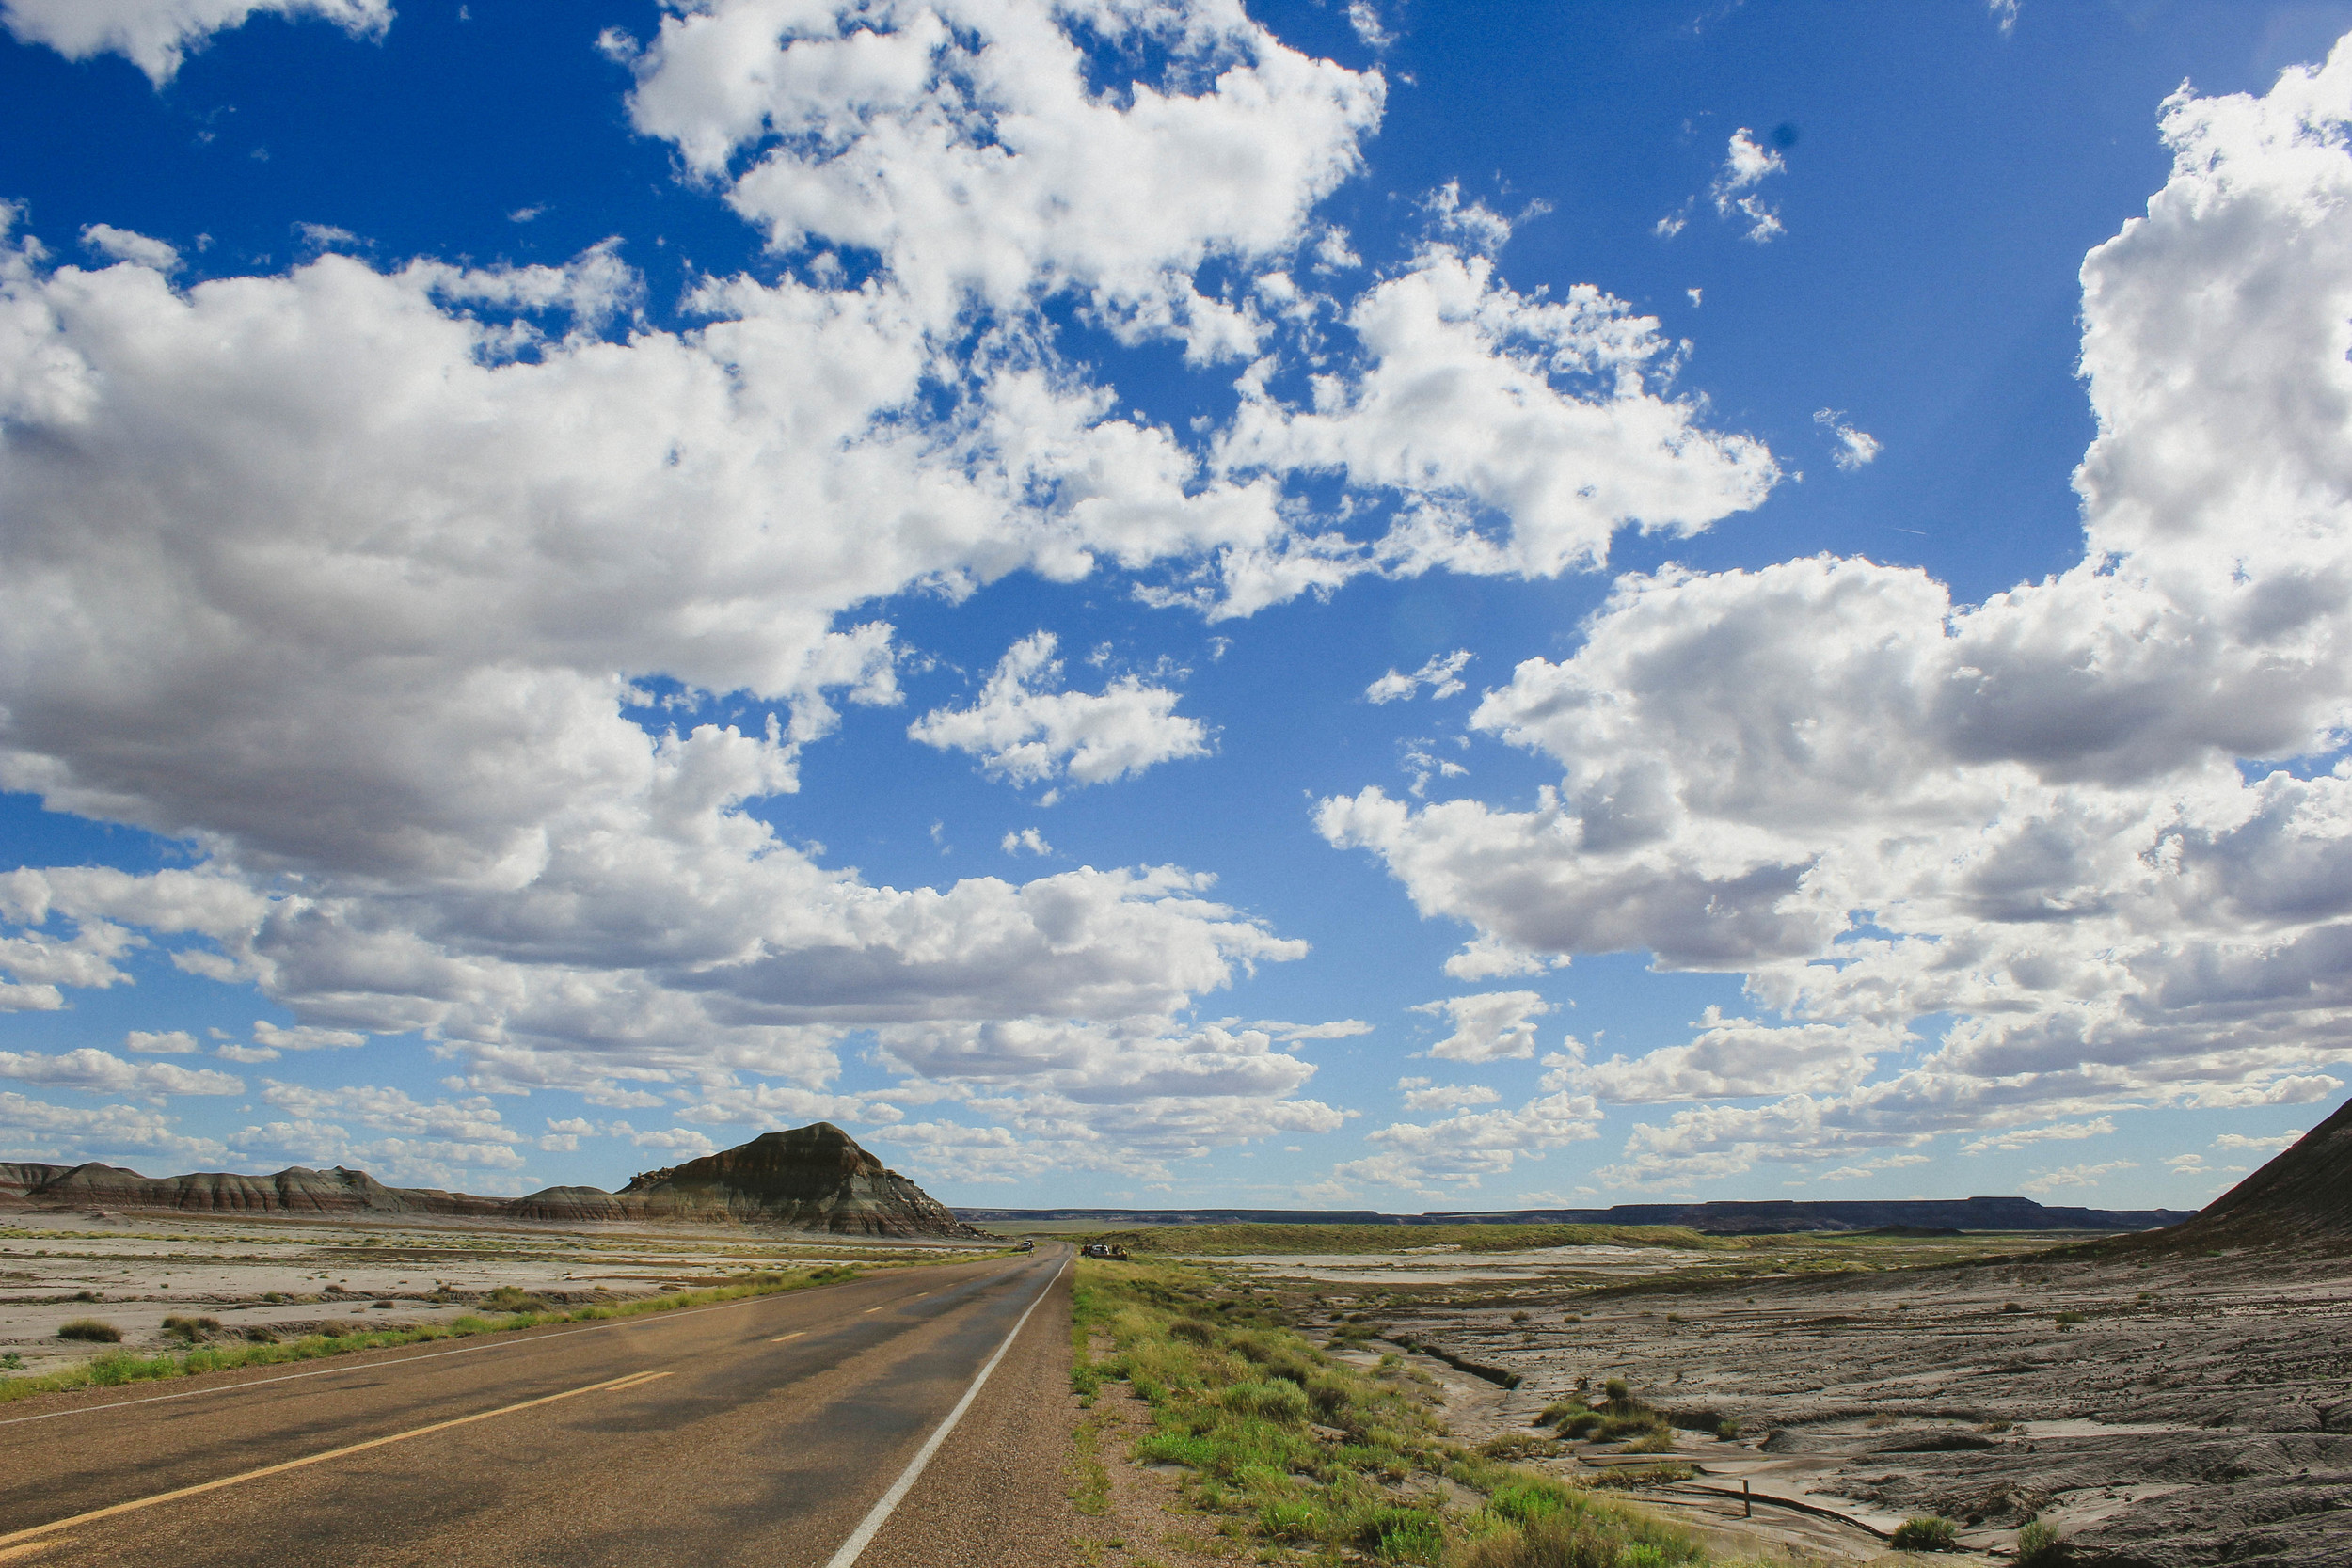 The road through Petrified Forest National Park